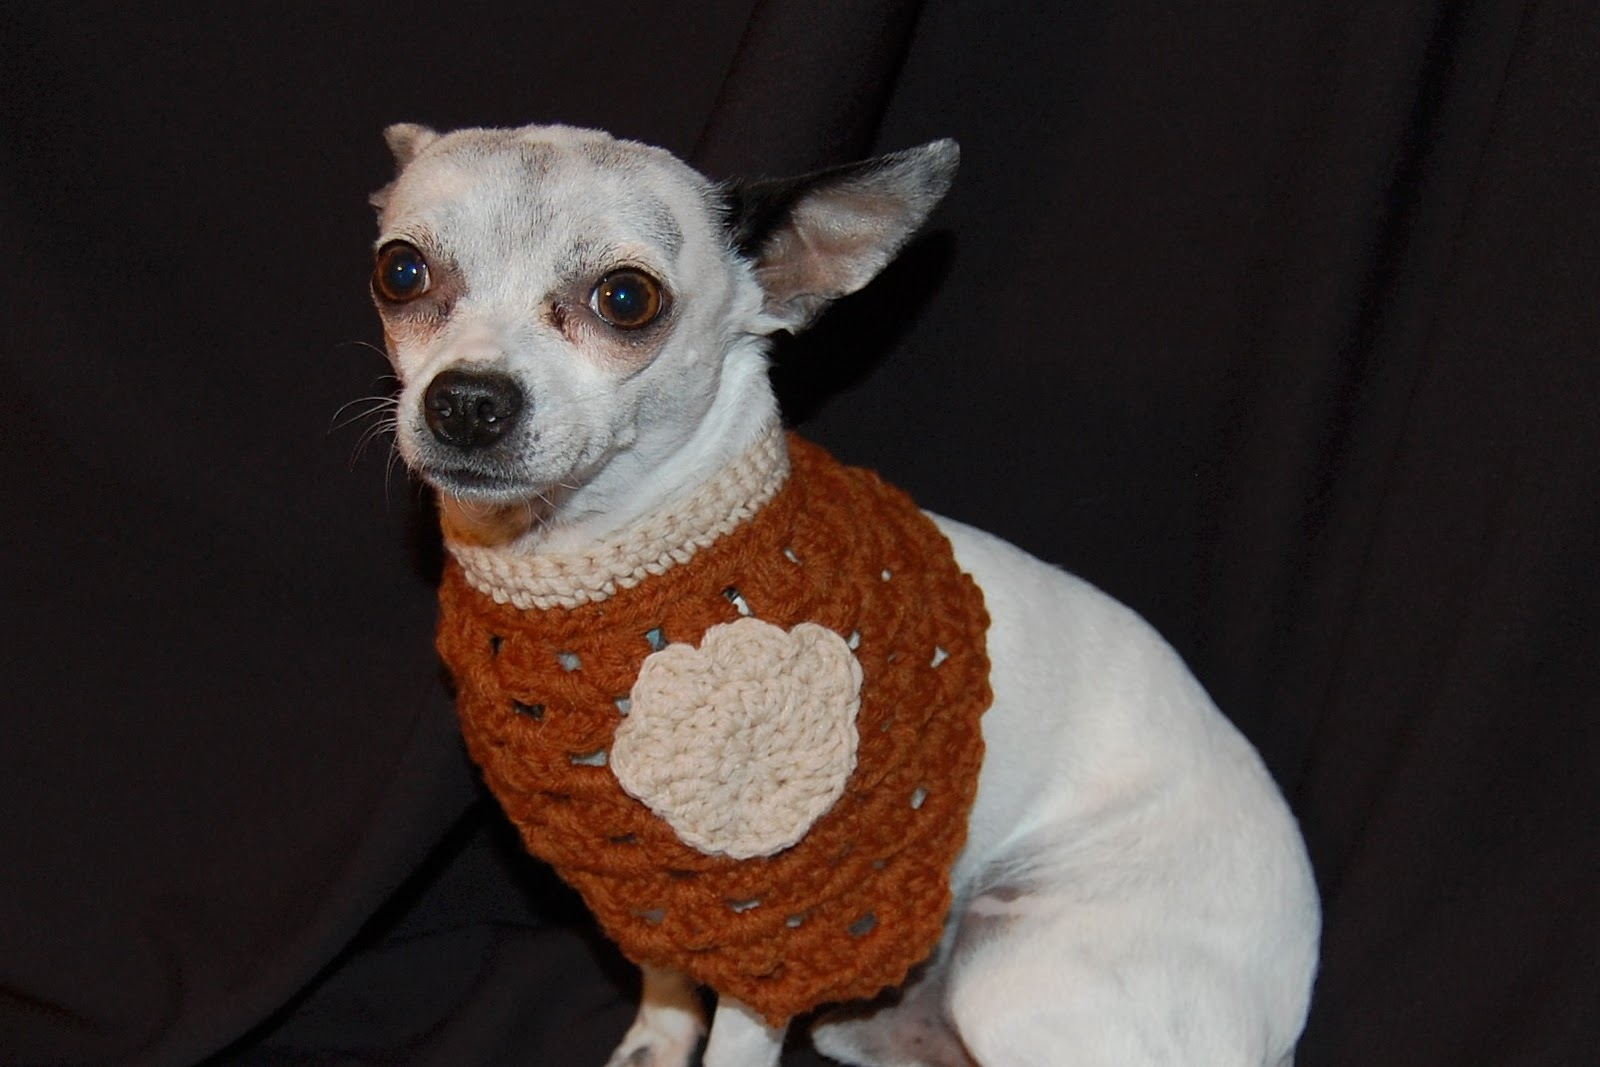 Free Crochet Pattern For Dog Bandana : Posh Pooch Designs Dog Clothes: Crochet Pattern for Dog ...